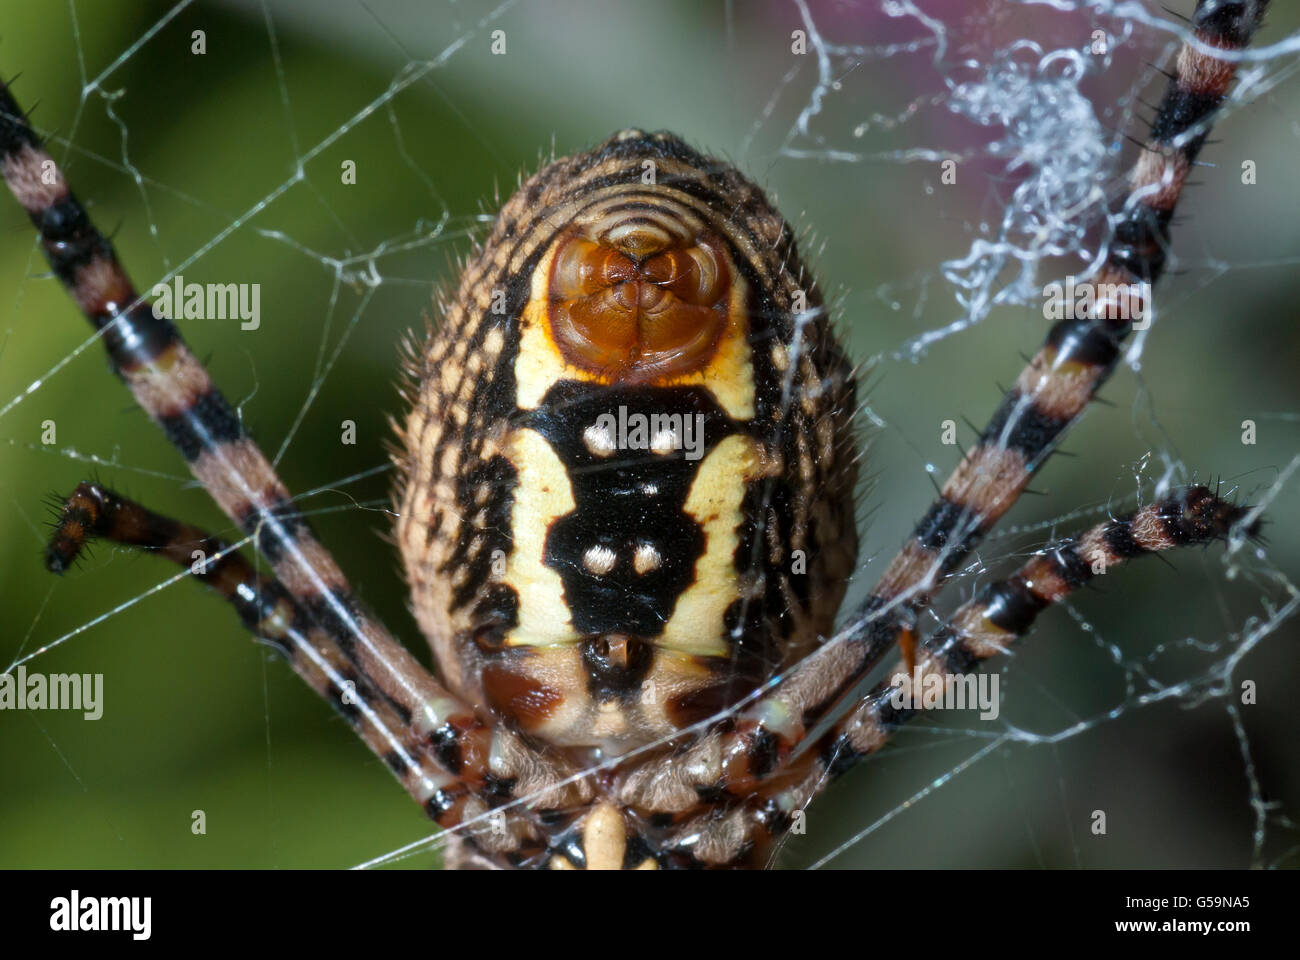 Spider, close up on the web organ - spinneret - Stock Image